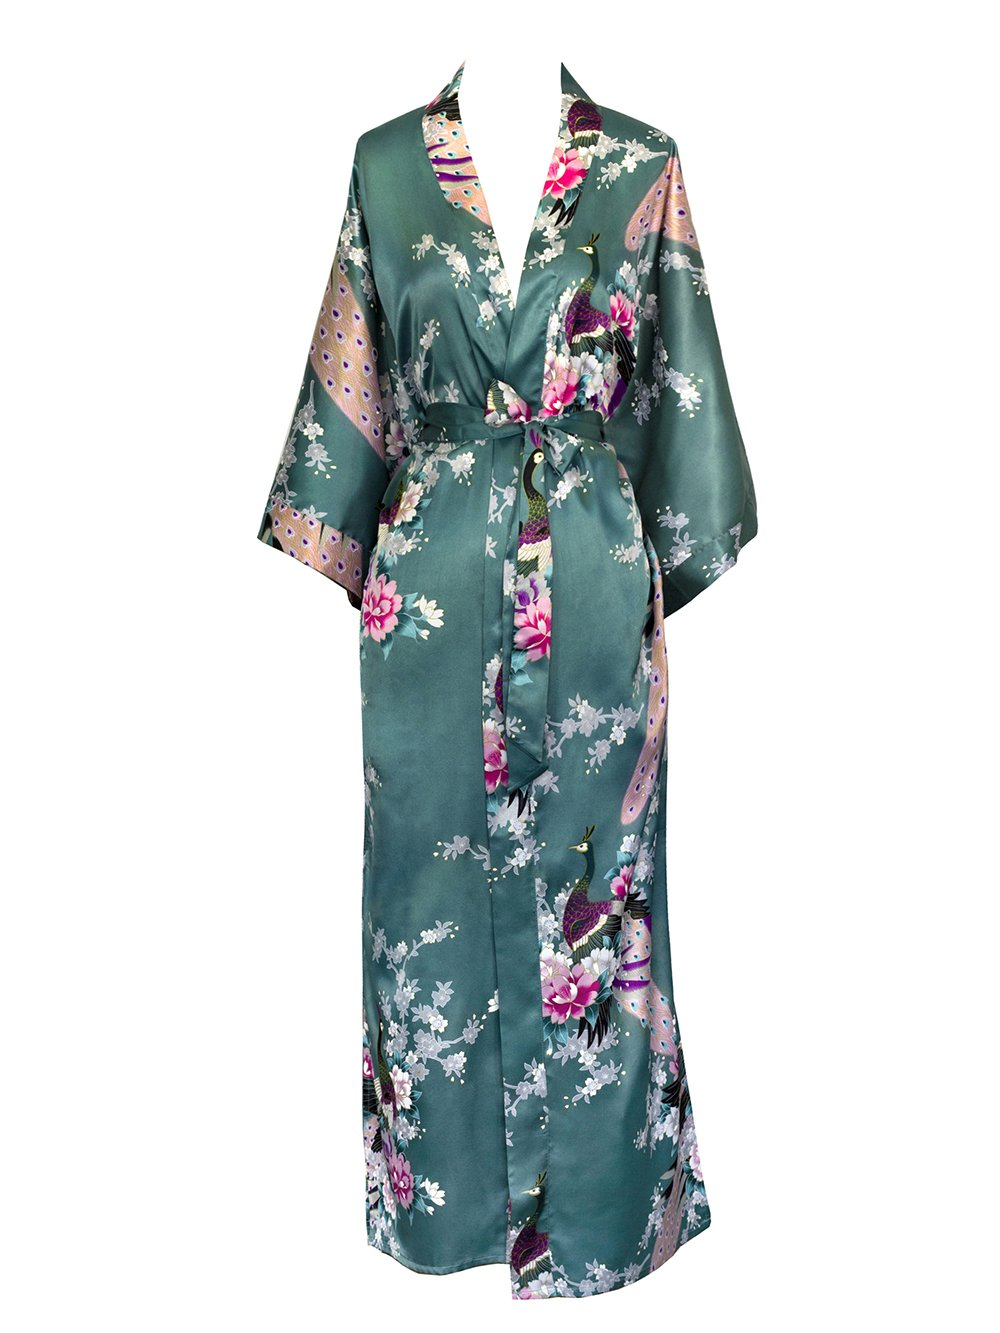 Old Shanghai Women's Kimono Long Robe - Peacock & Blossoms KML01PT-aqua